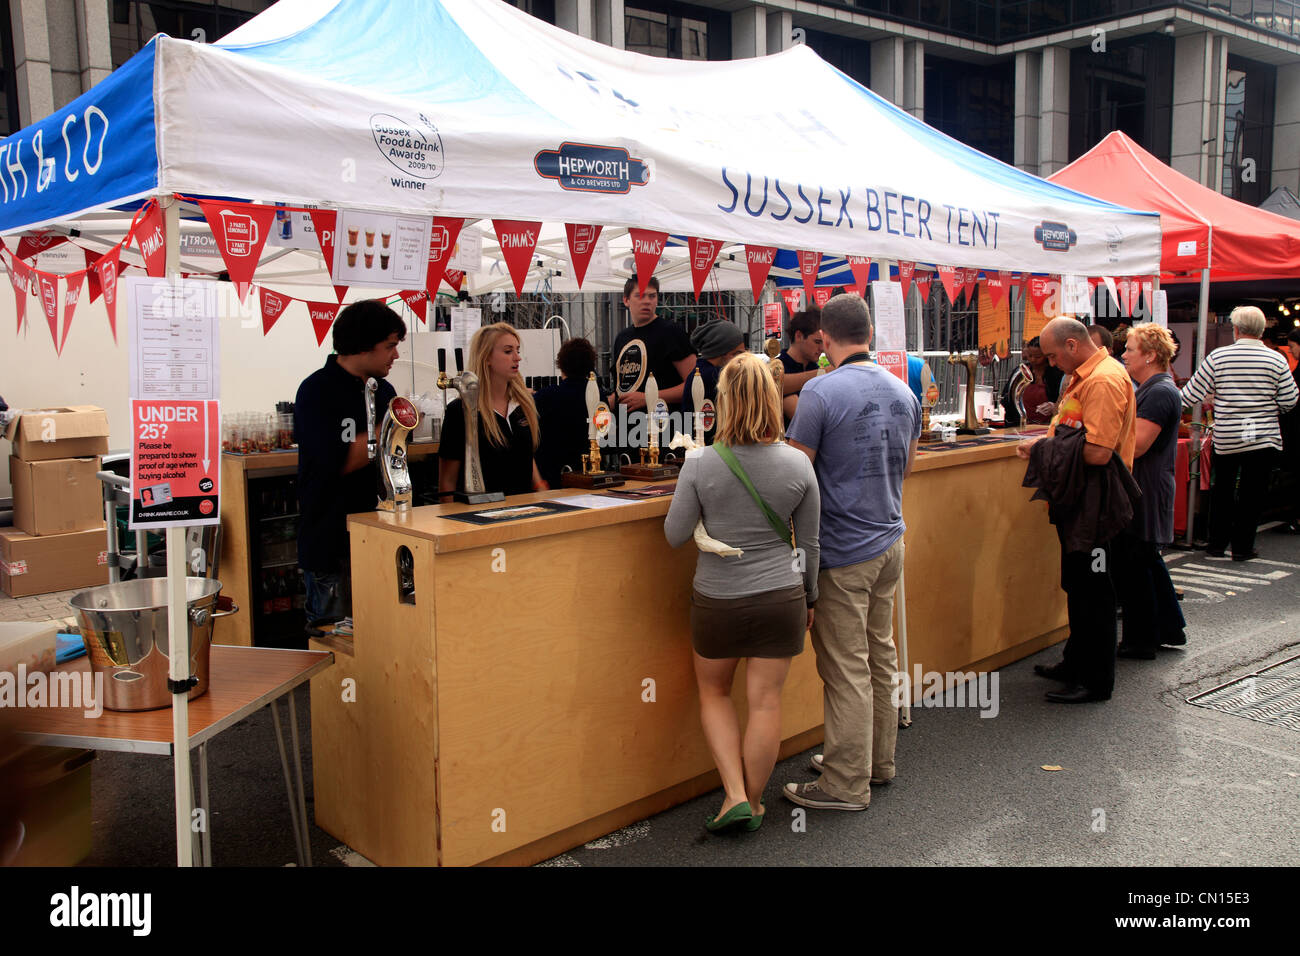 Sussex beer tent at the u0027Feast on the Bridgeu0027 on Southwark Bridge London England during the Thames Festival 2011 & Sussex beer tent at the u0027Feast on the Bridgeu0027 on Southwark Bridge ...